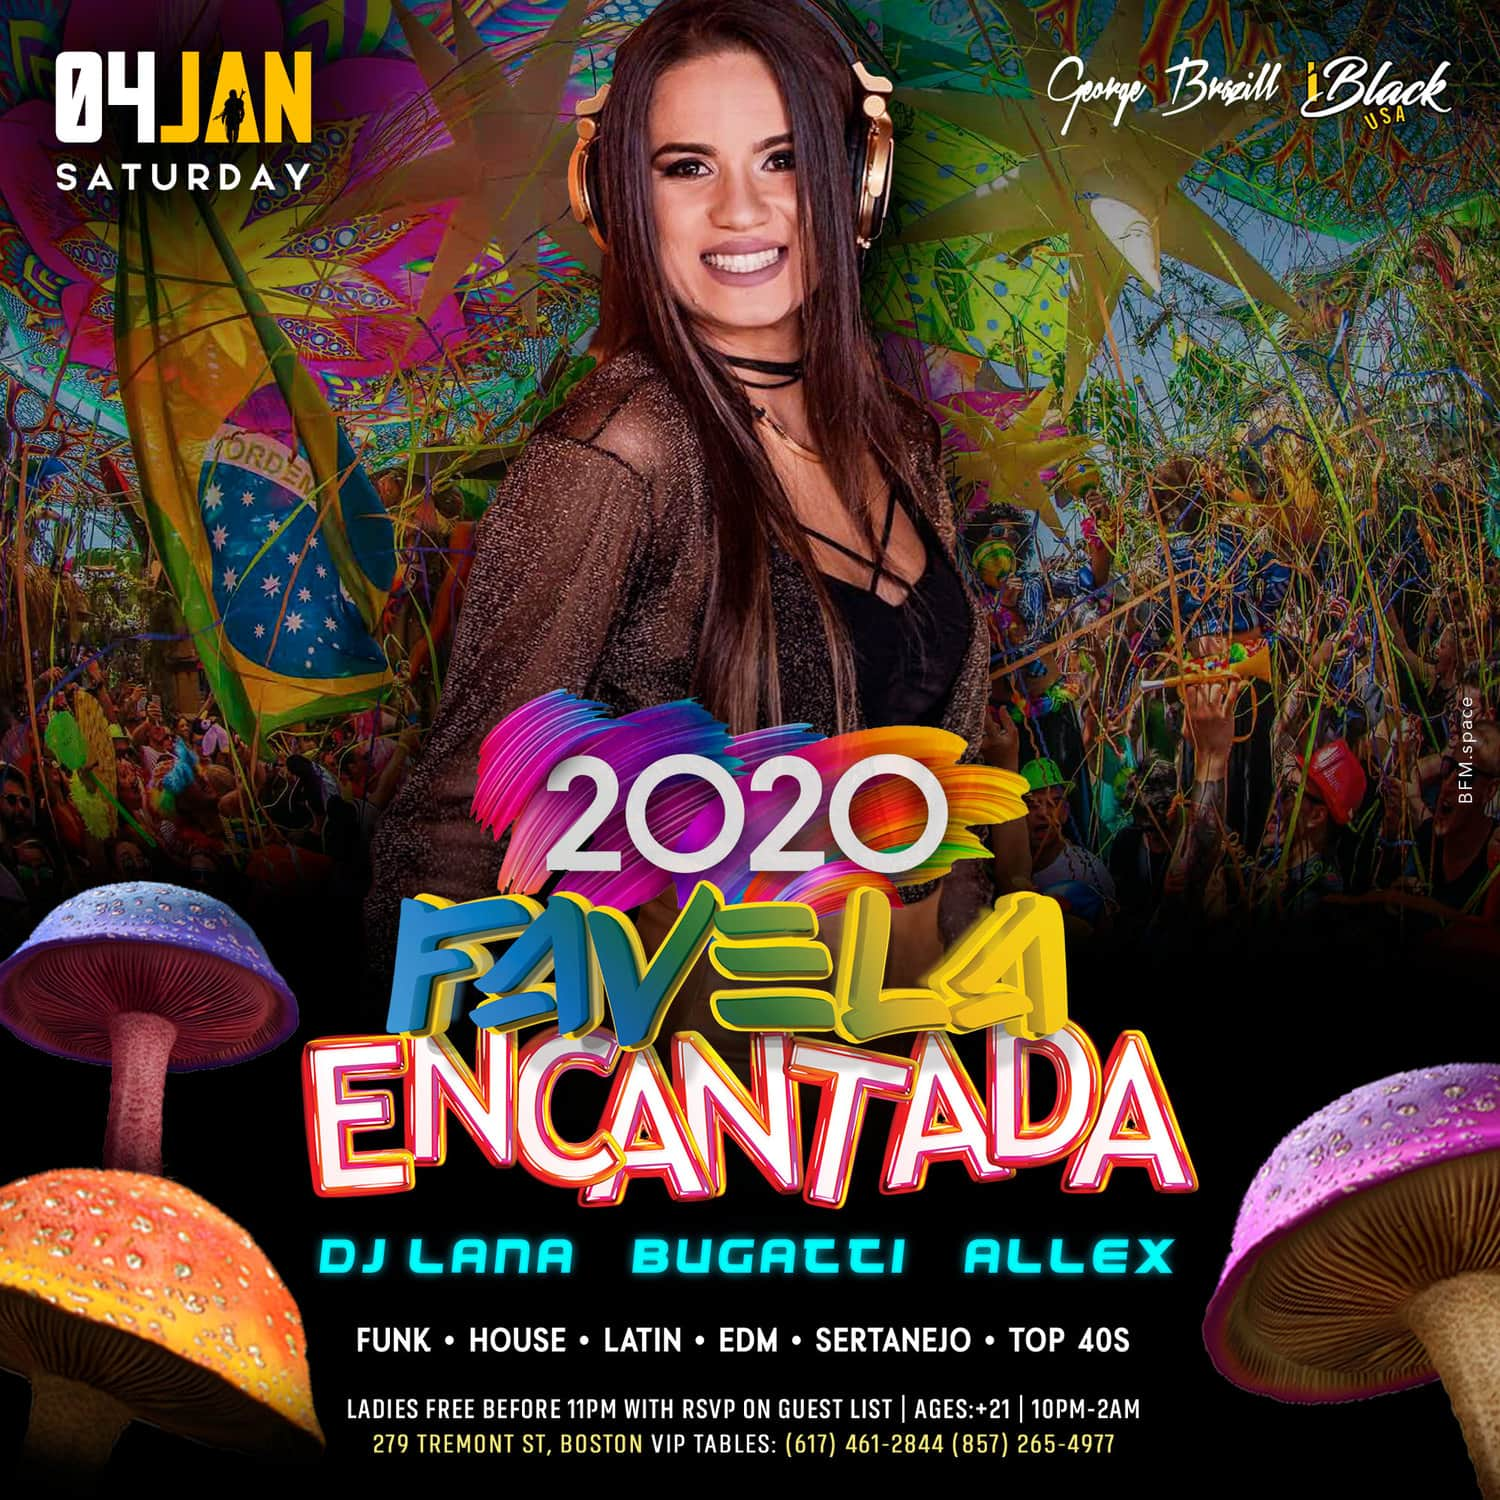 FAVELA ENCANTADA 2020 CANDIBAR BOSTON - 04 JAN | iBlackUSA